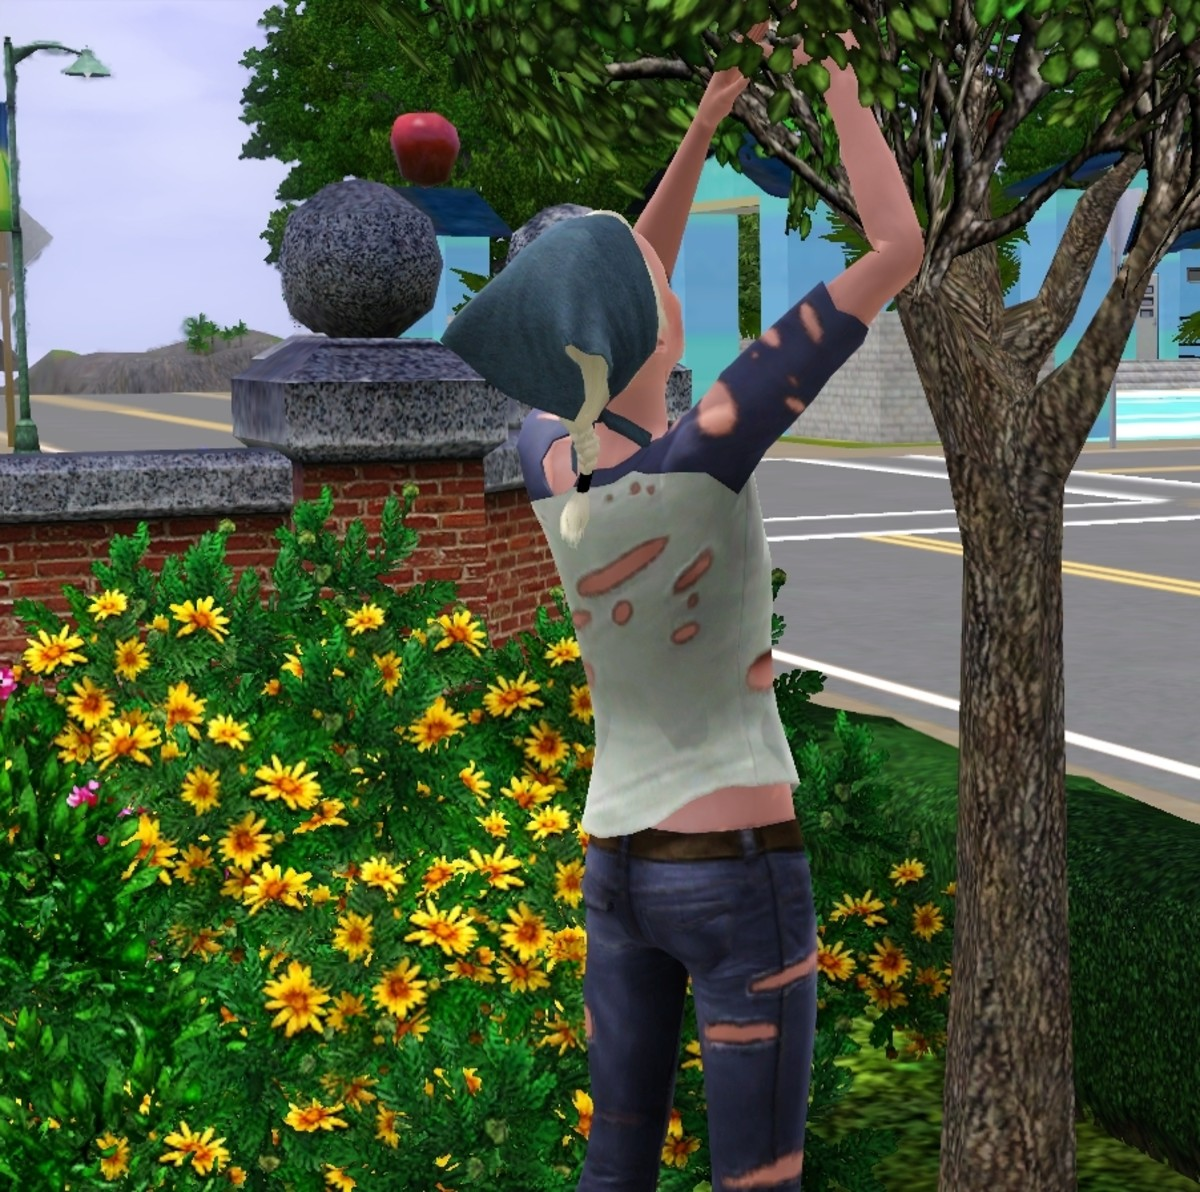 Gathering fruit from trees is a great source of income or food in The Sims 3.